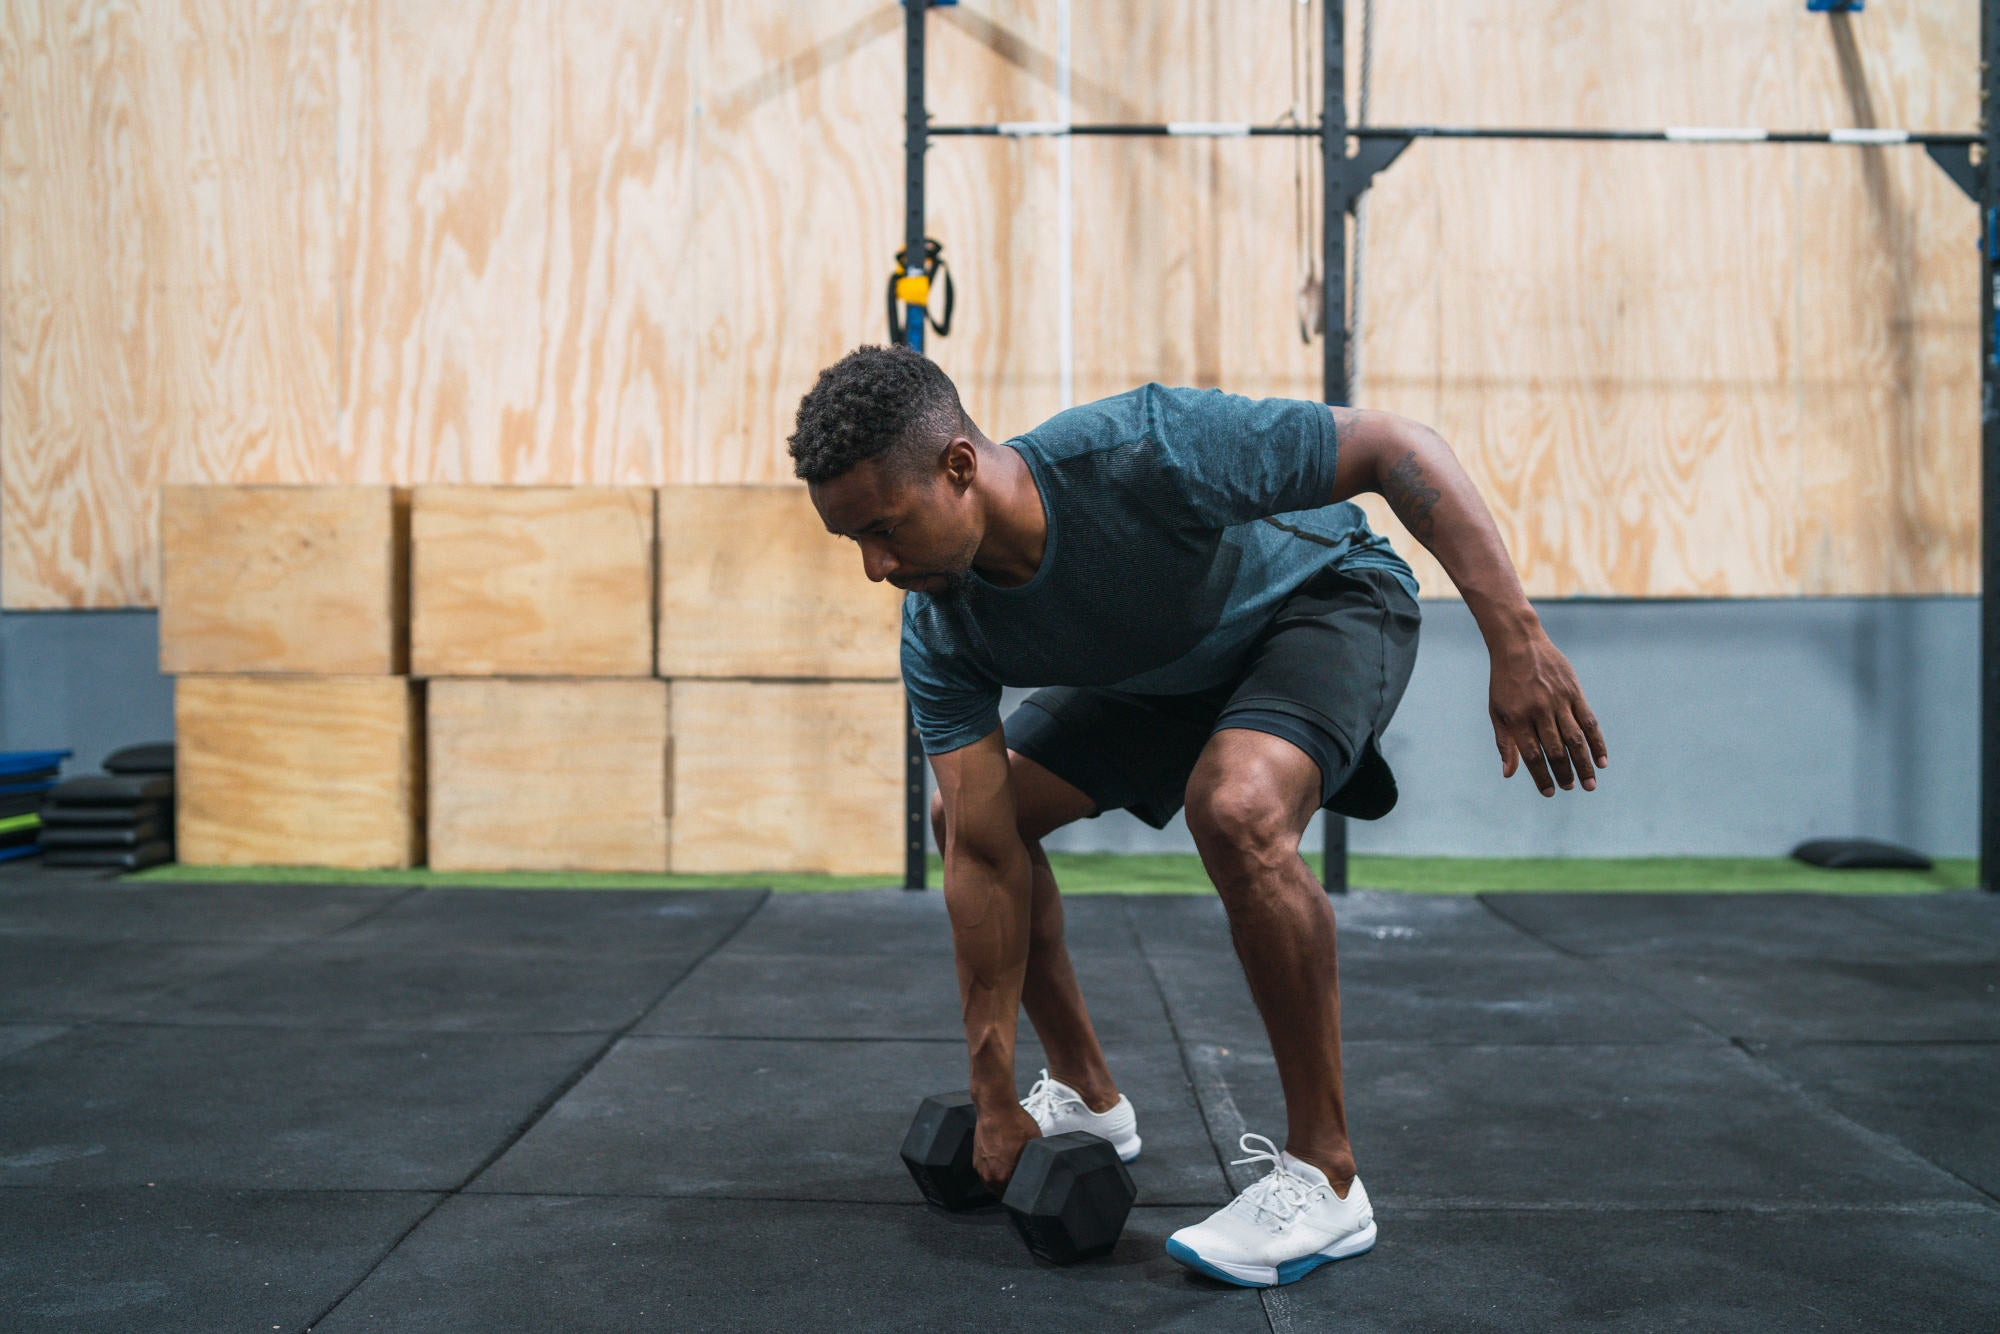 Portrait of young crossfit athlete doing exercise with dumbbell at the gym. Crossfit, sport and healthy lifestyle concept.